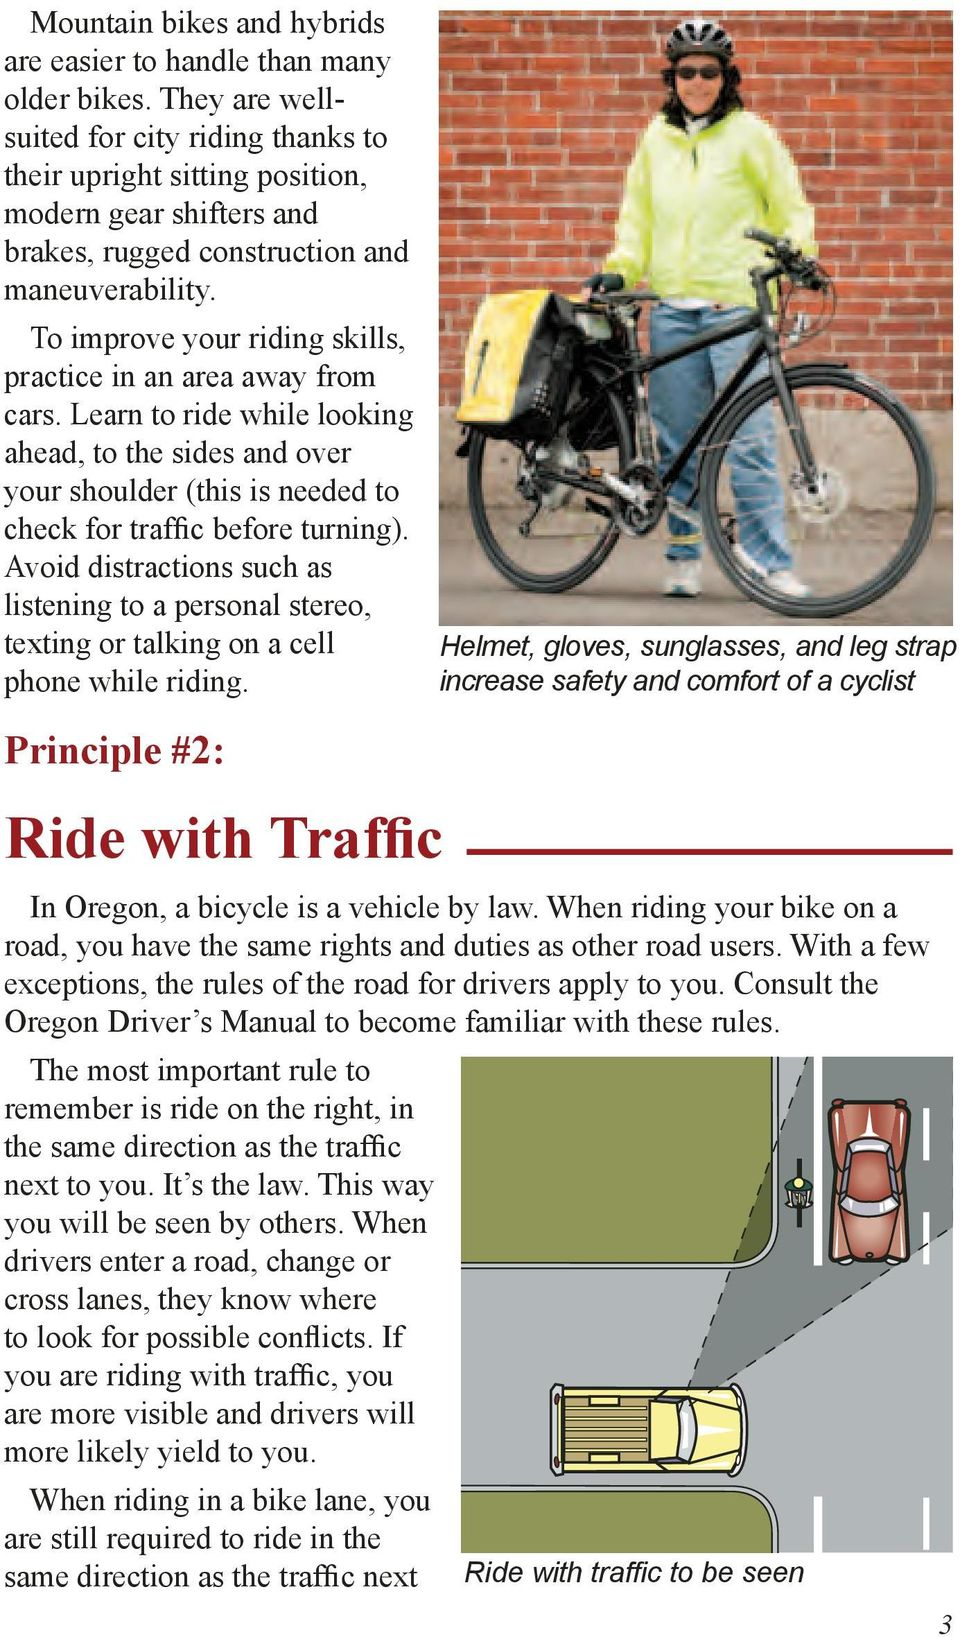 To improve your riding skills, practice in an area away from cars. Learn to ride while looking ahead, to the sides and over your shoulder (this is needed to check for traffic before turning).